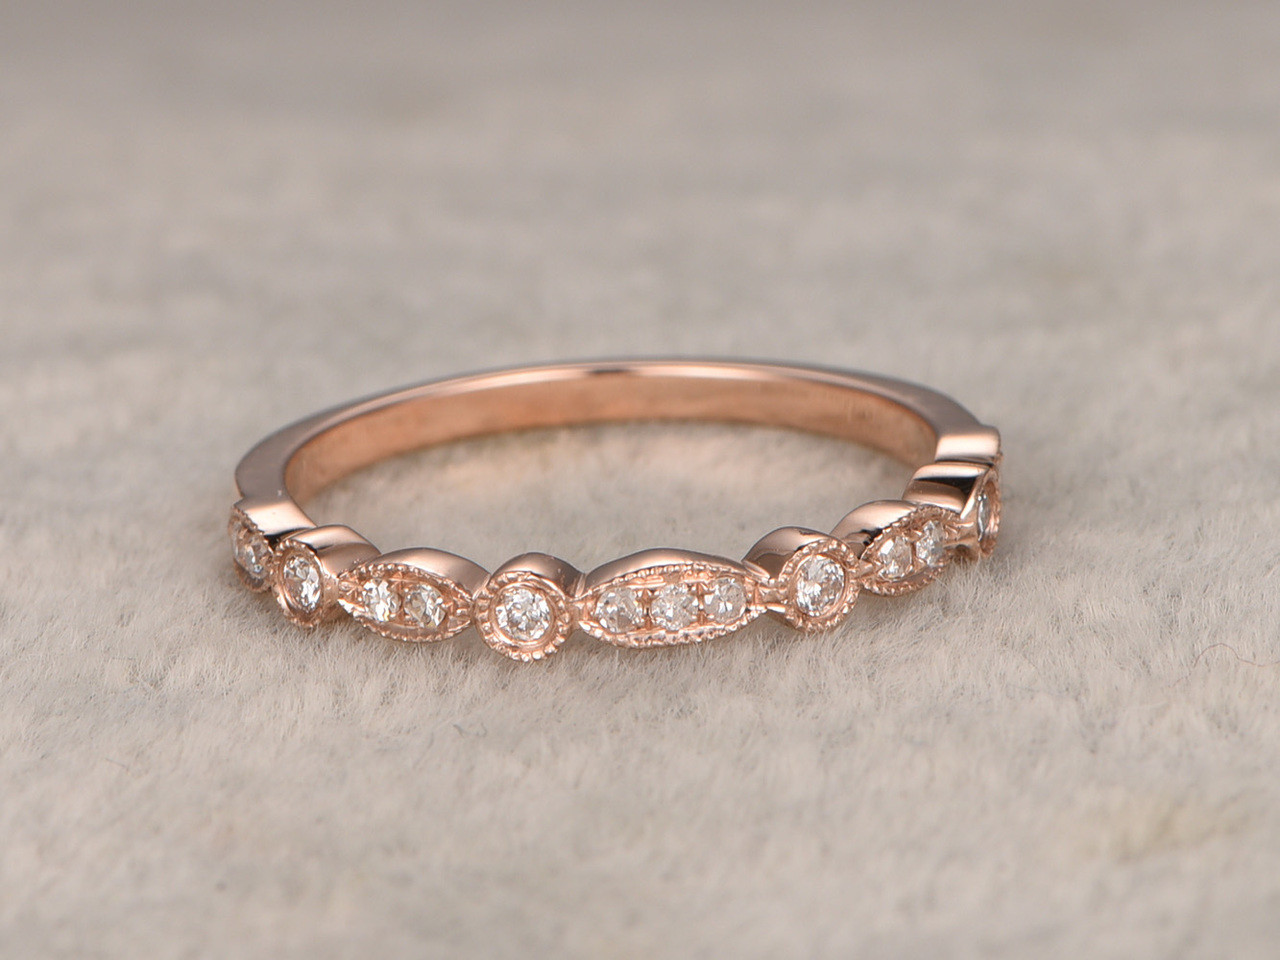 Diamond Wedding Rings For Her 14k Rose Gold Antique Center 3 stones